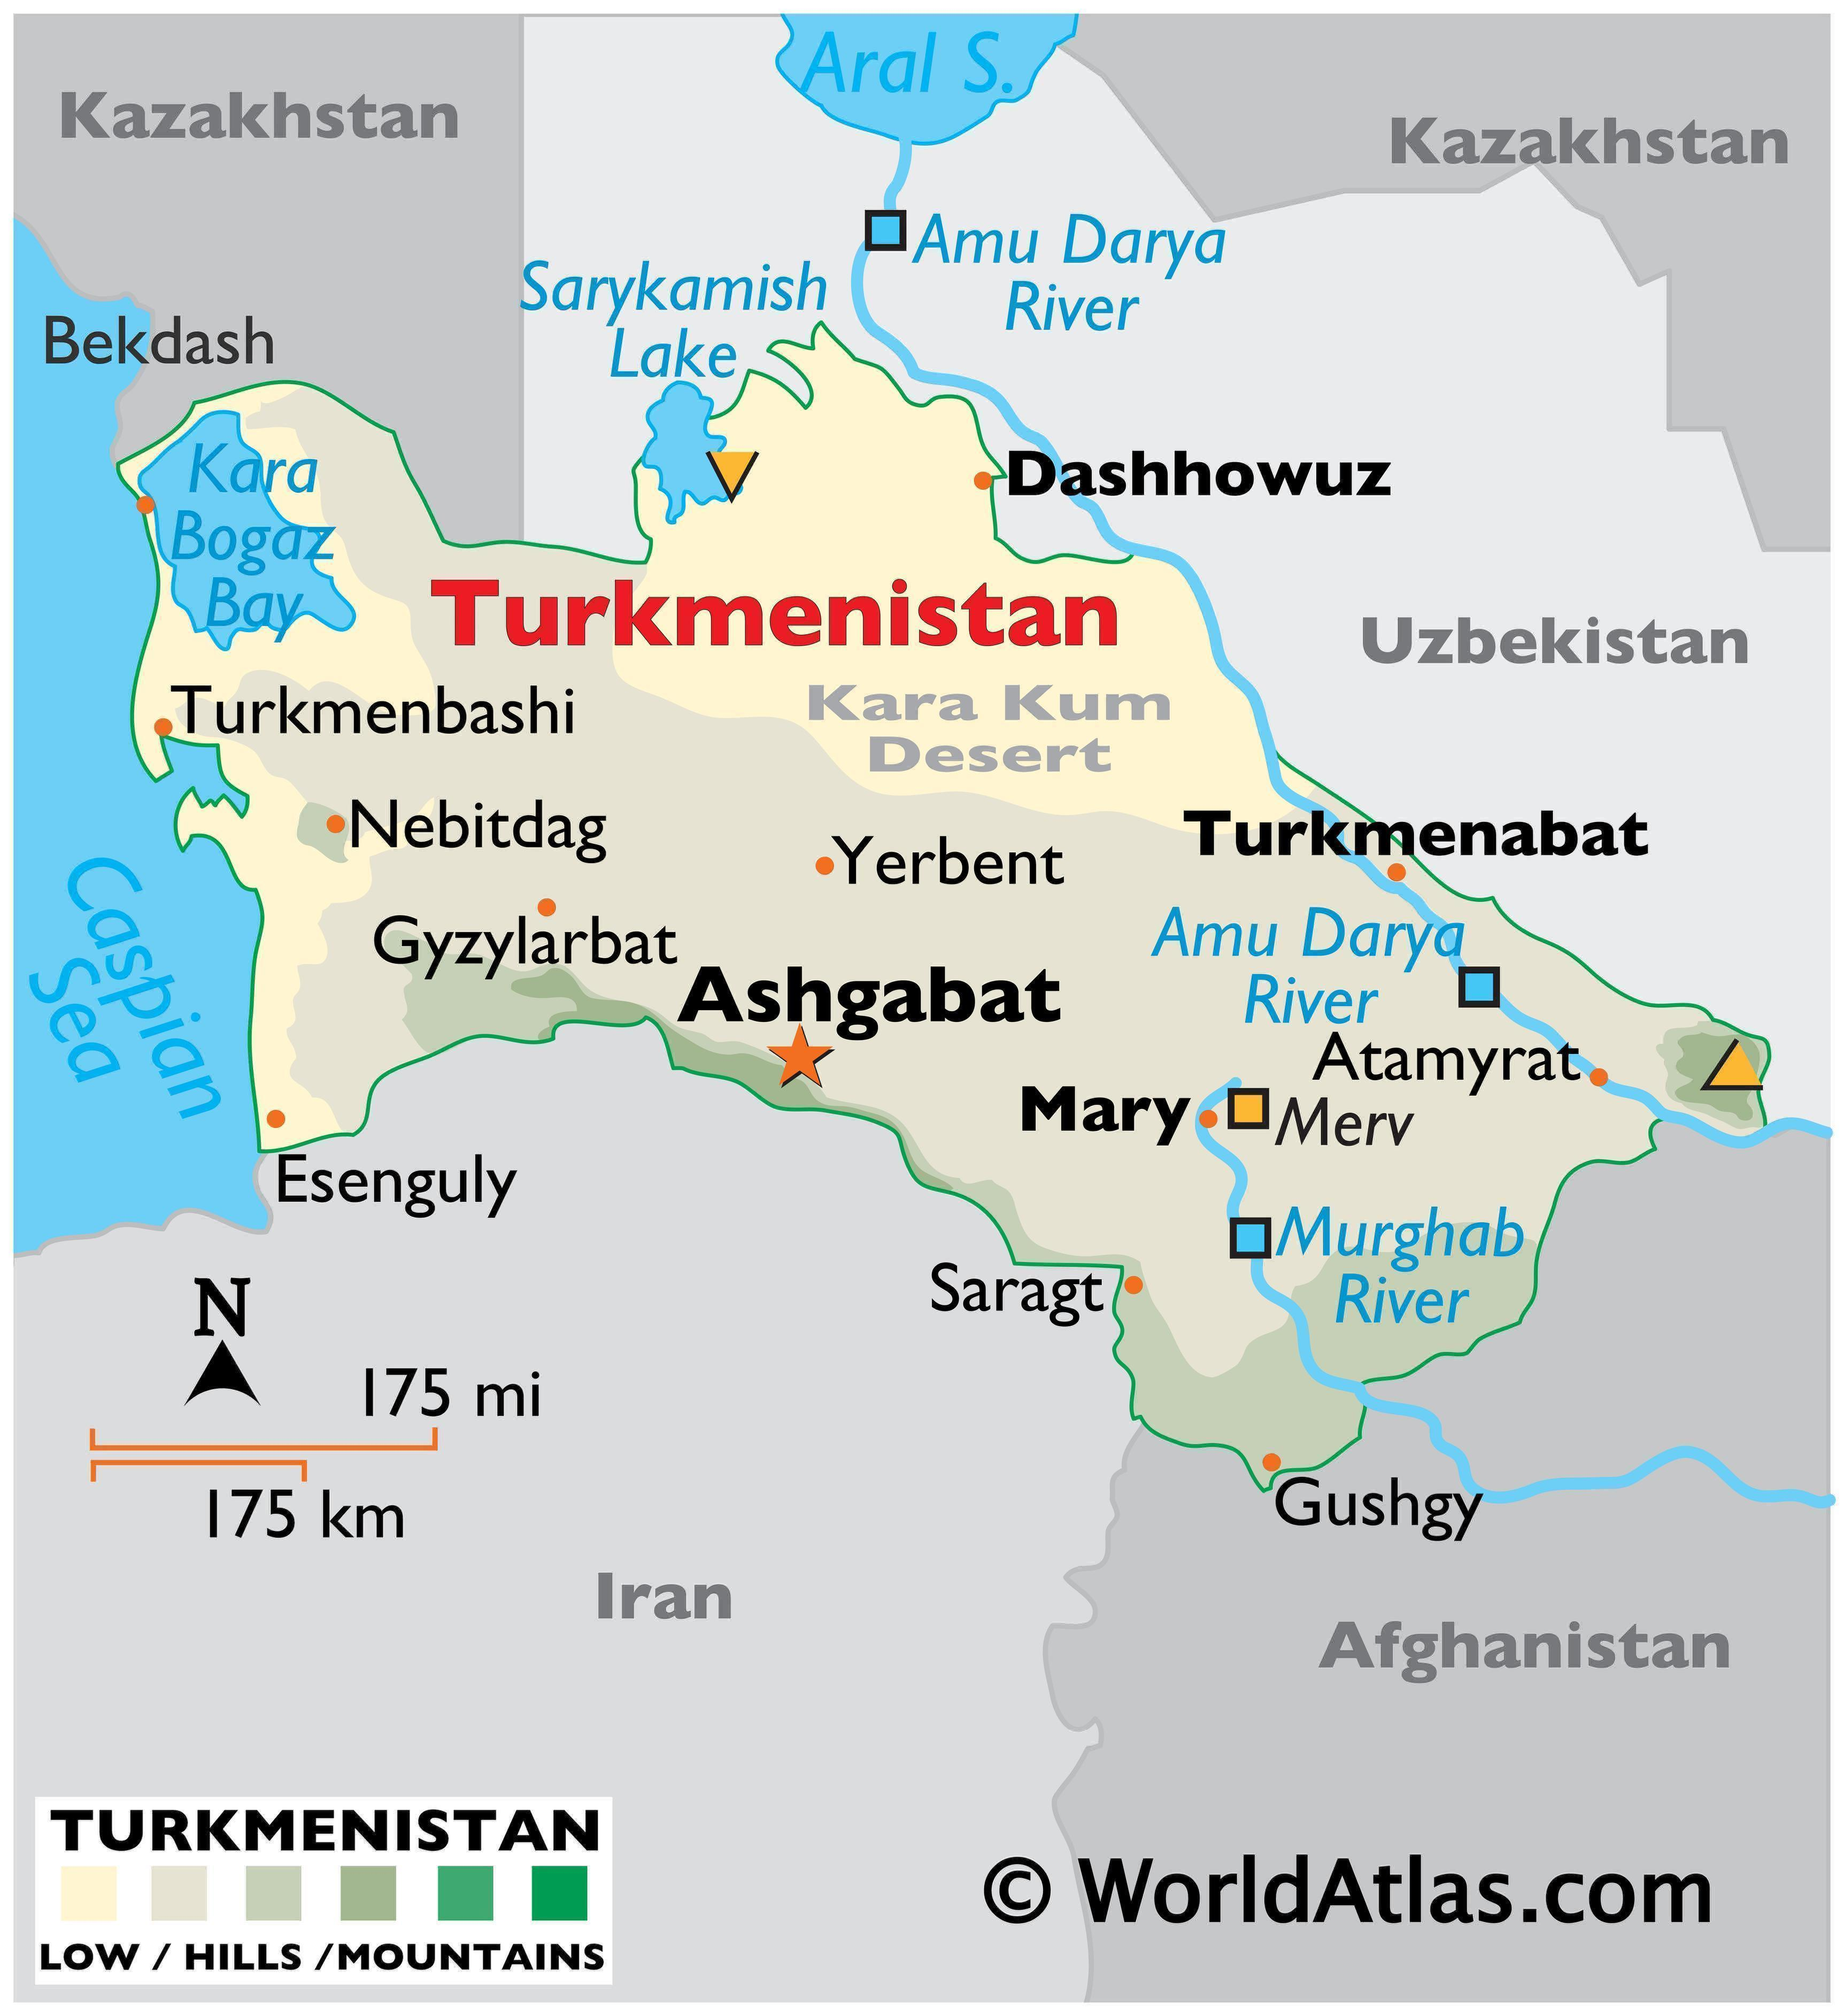 Physical Map of Turkmenistan with state boundaries, relief, major rivers, lakes, highland areas, highest peak, important cities, and more.